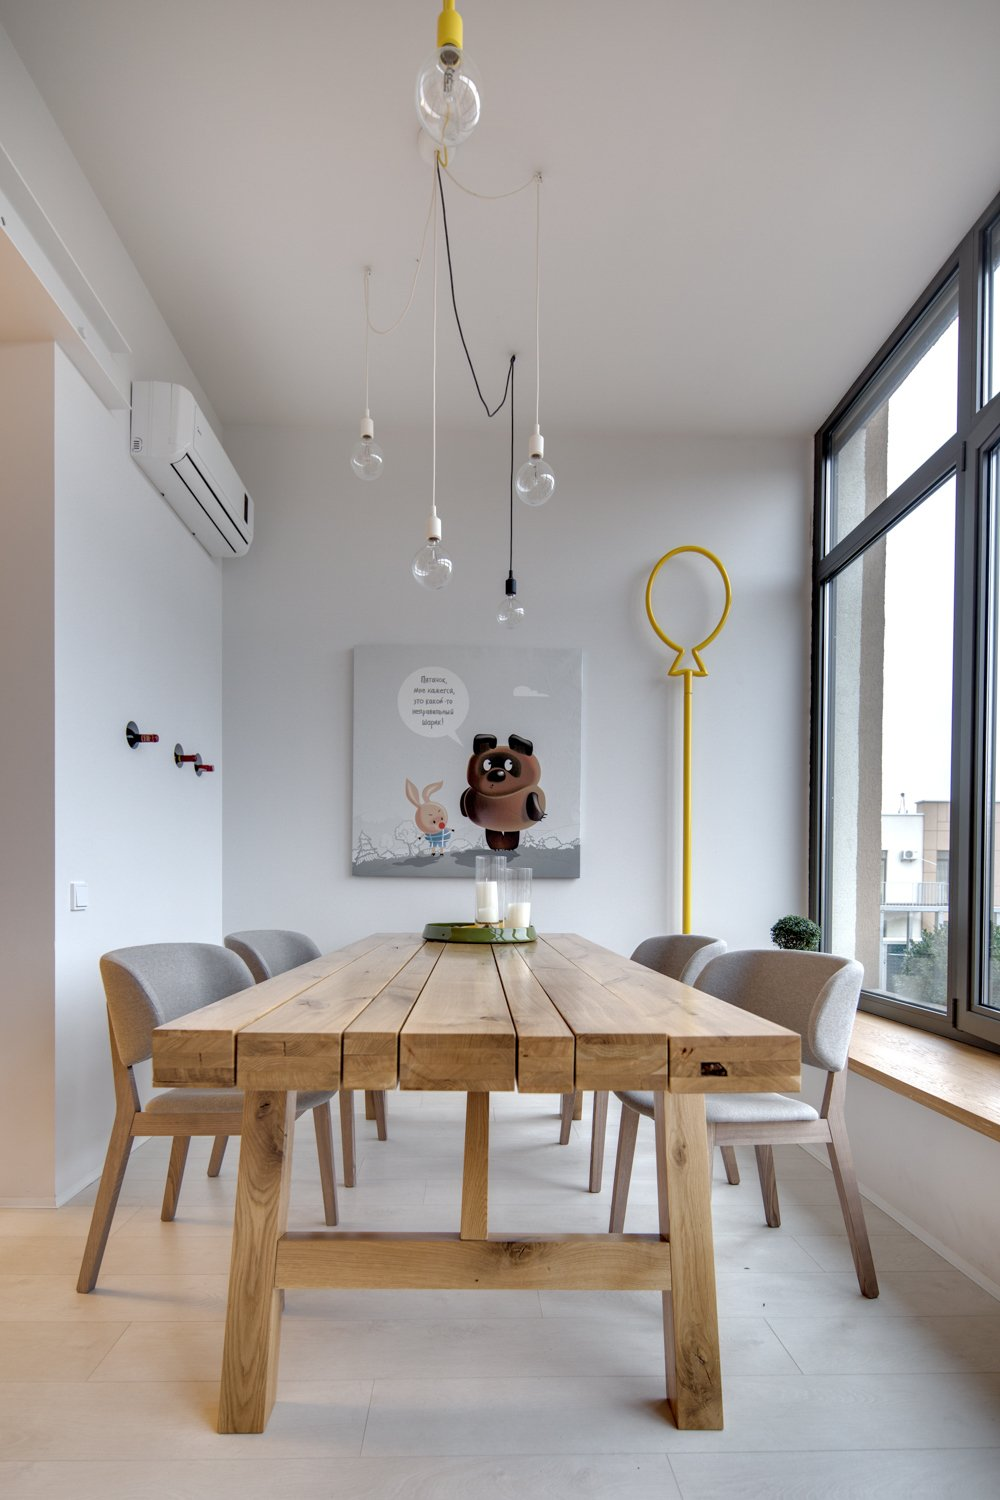 Reclaimed Wood Dining Table - A modern home with personality of perfect for a fun couple